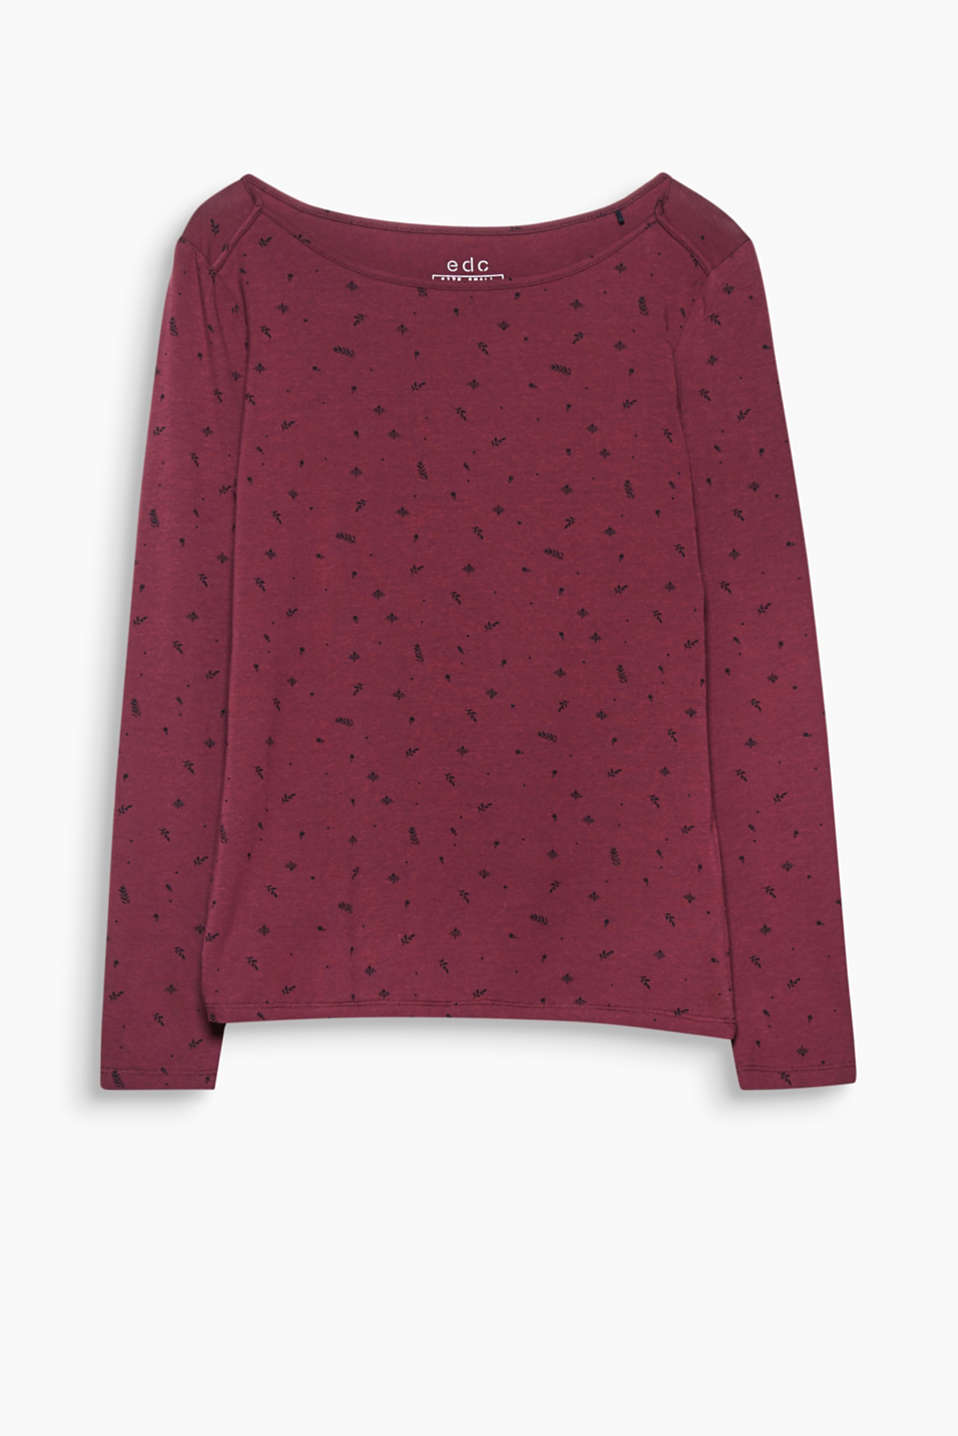 Twinkle, twinkle little star: the all-over print on this stretchy cotton, long sleeve top will never fail to turn heads.